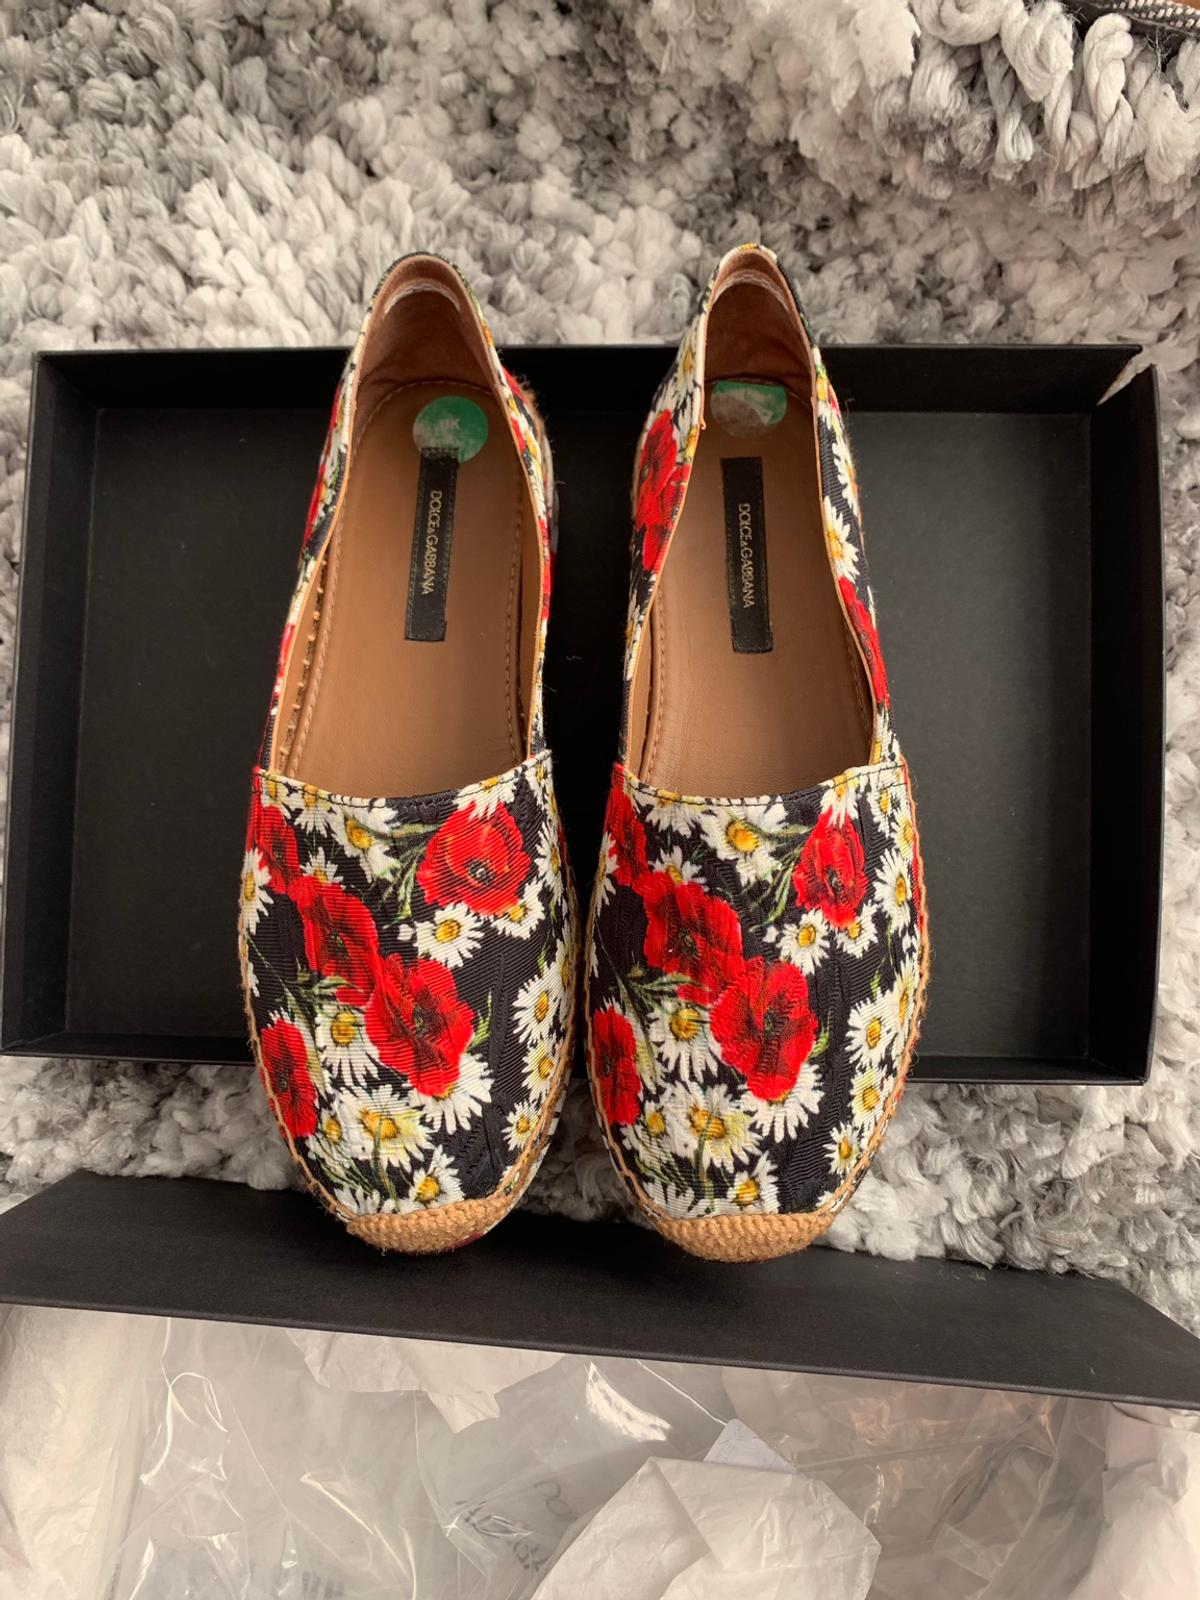 Authentic Dolce and Gabbana Floral Espadrilles. Size 4, worn once in very good condition!